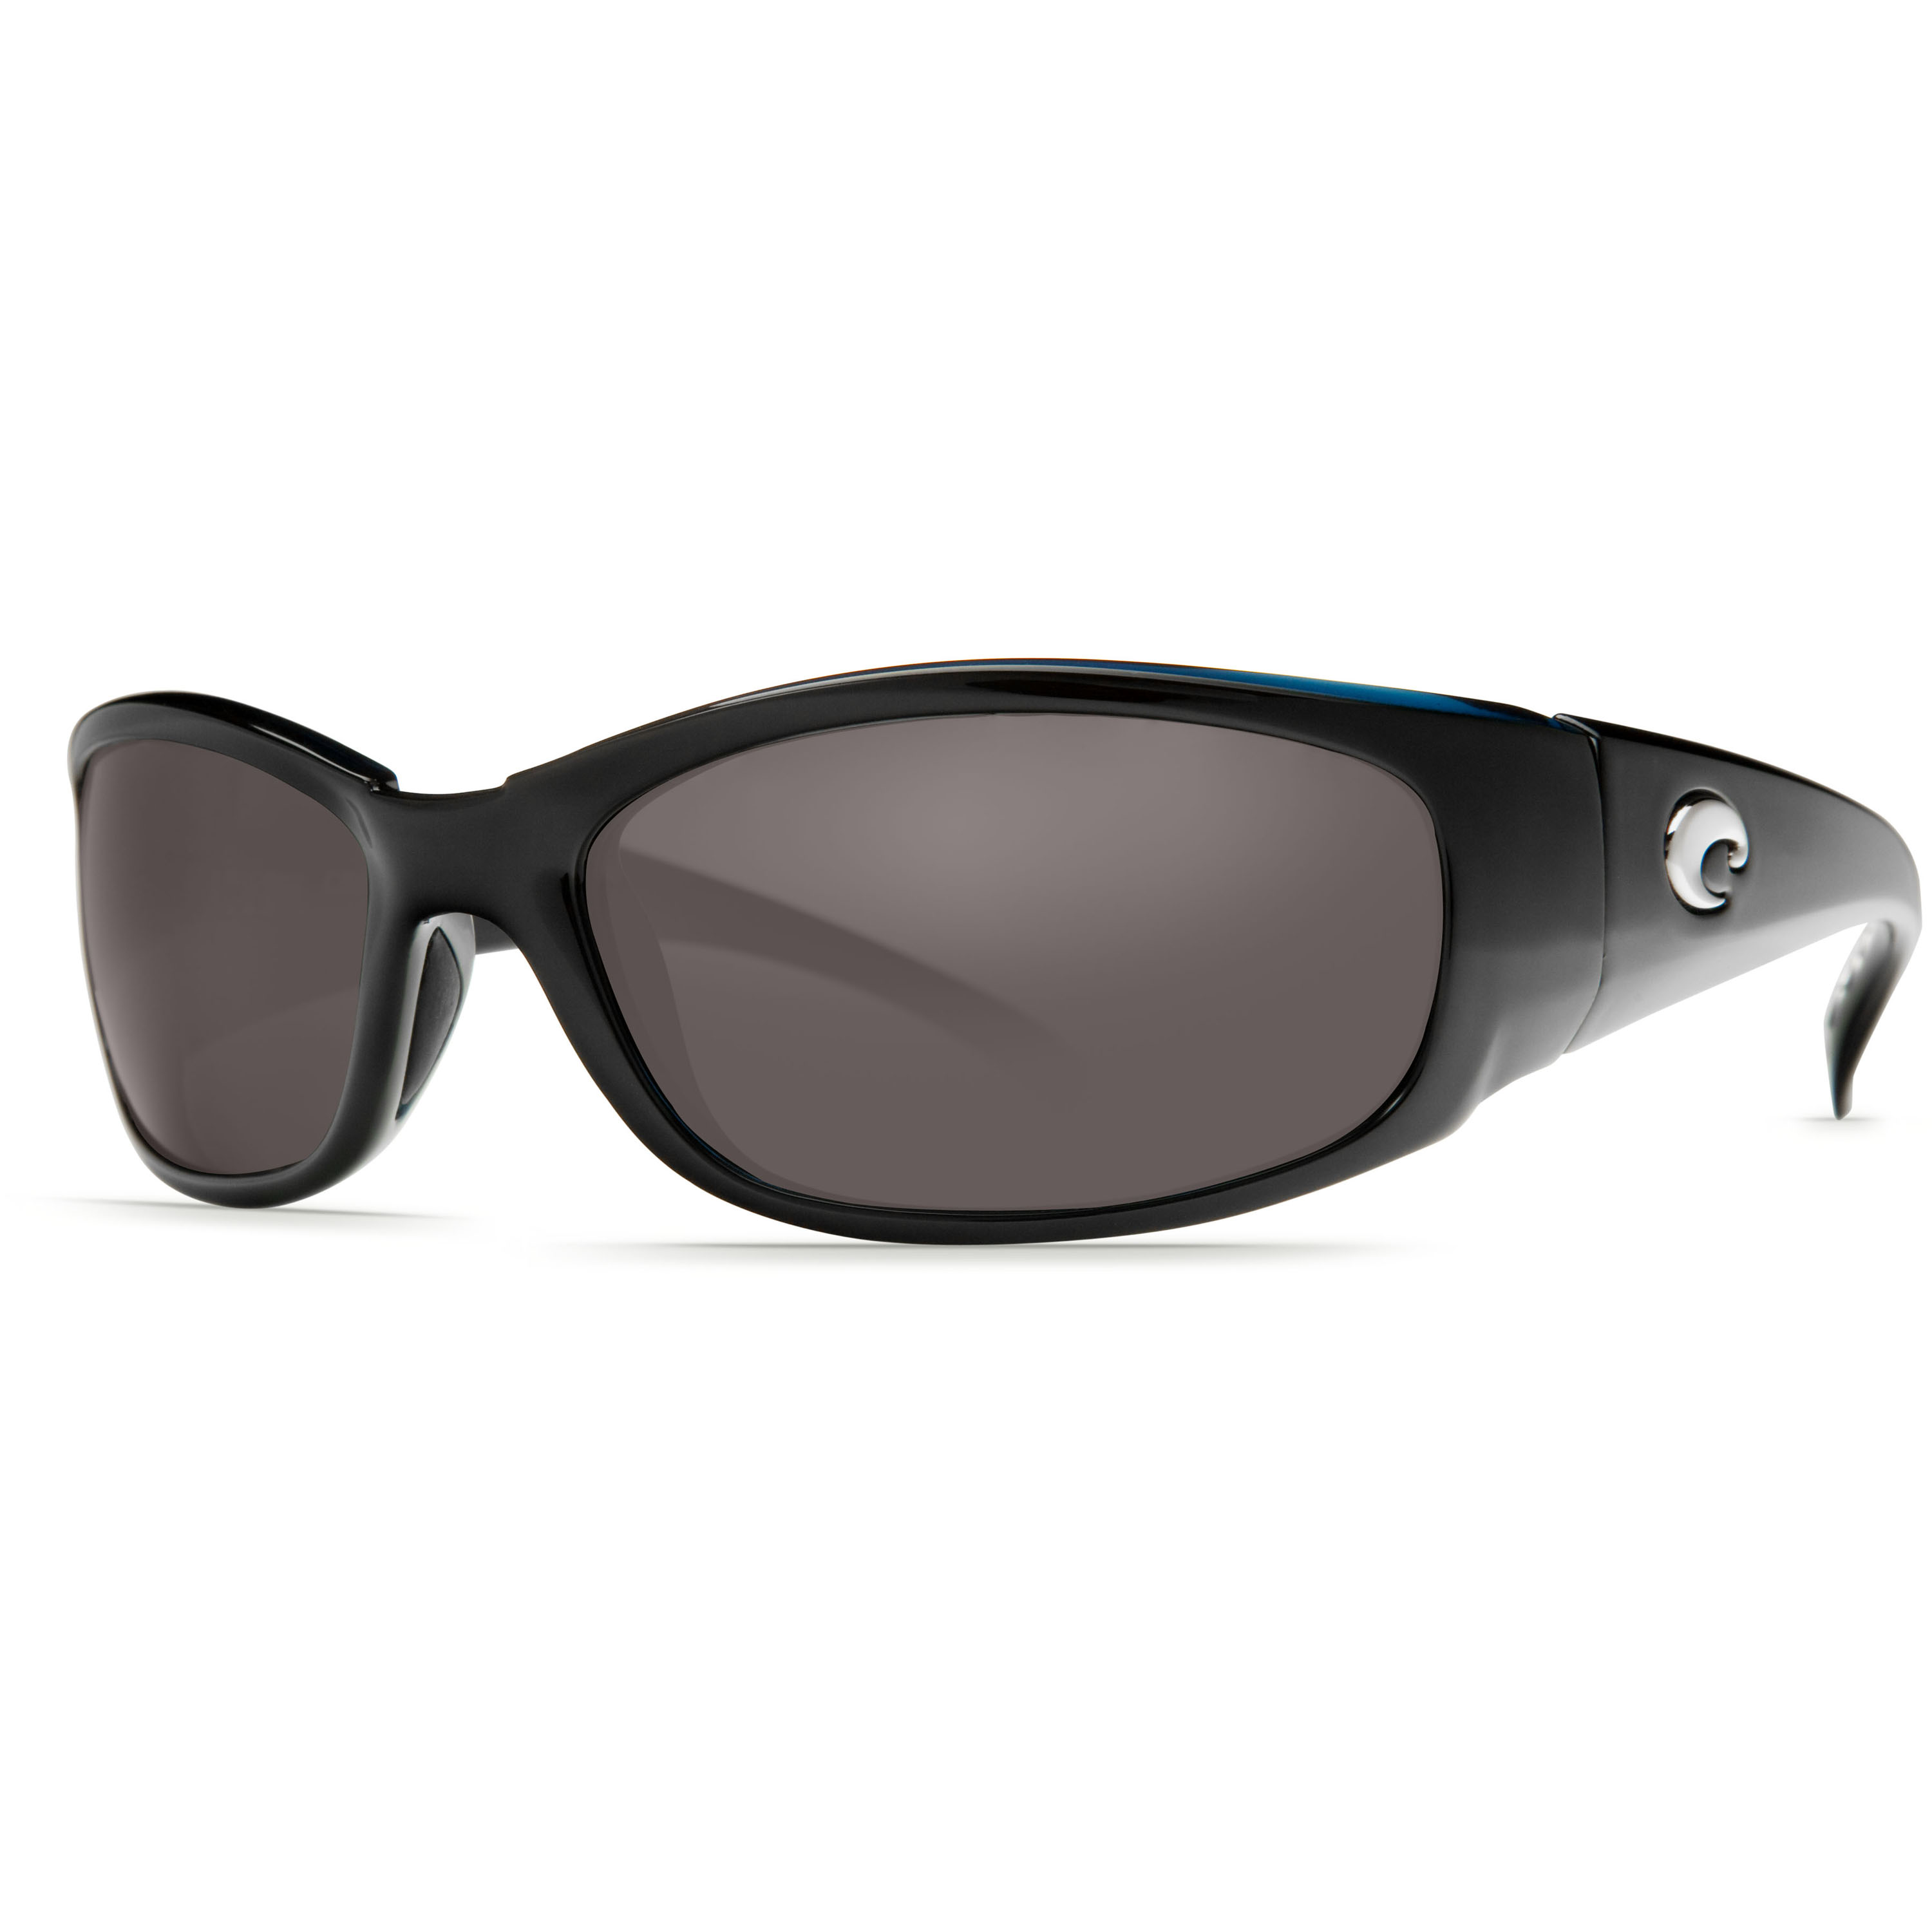 The popular Hammerhead style is one of Kenny Chesney's five new Limited Edition Costa Sunglasses in 2012.